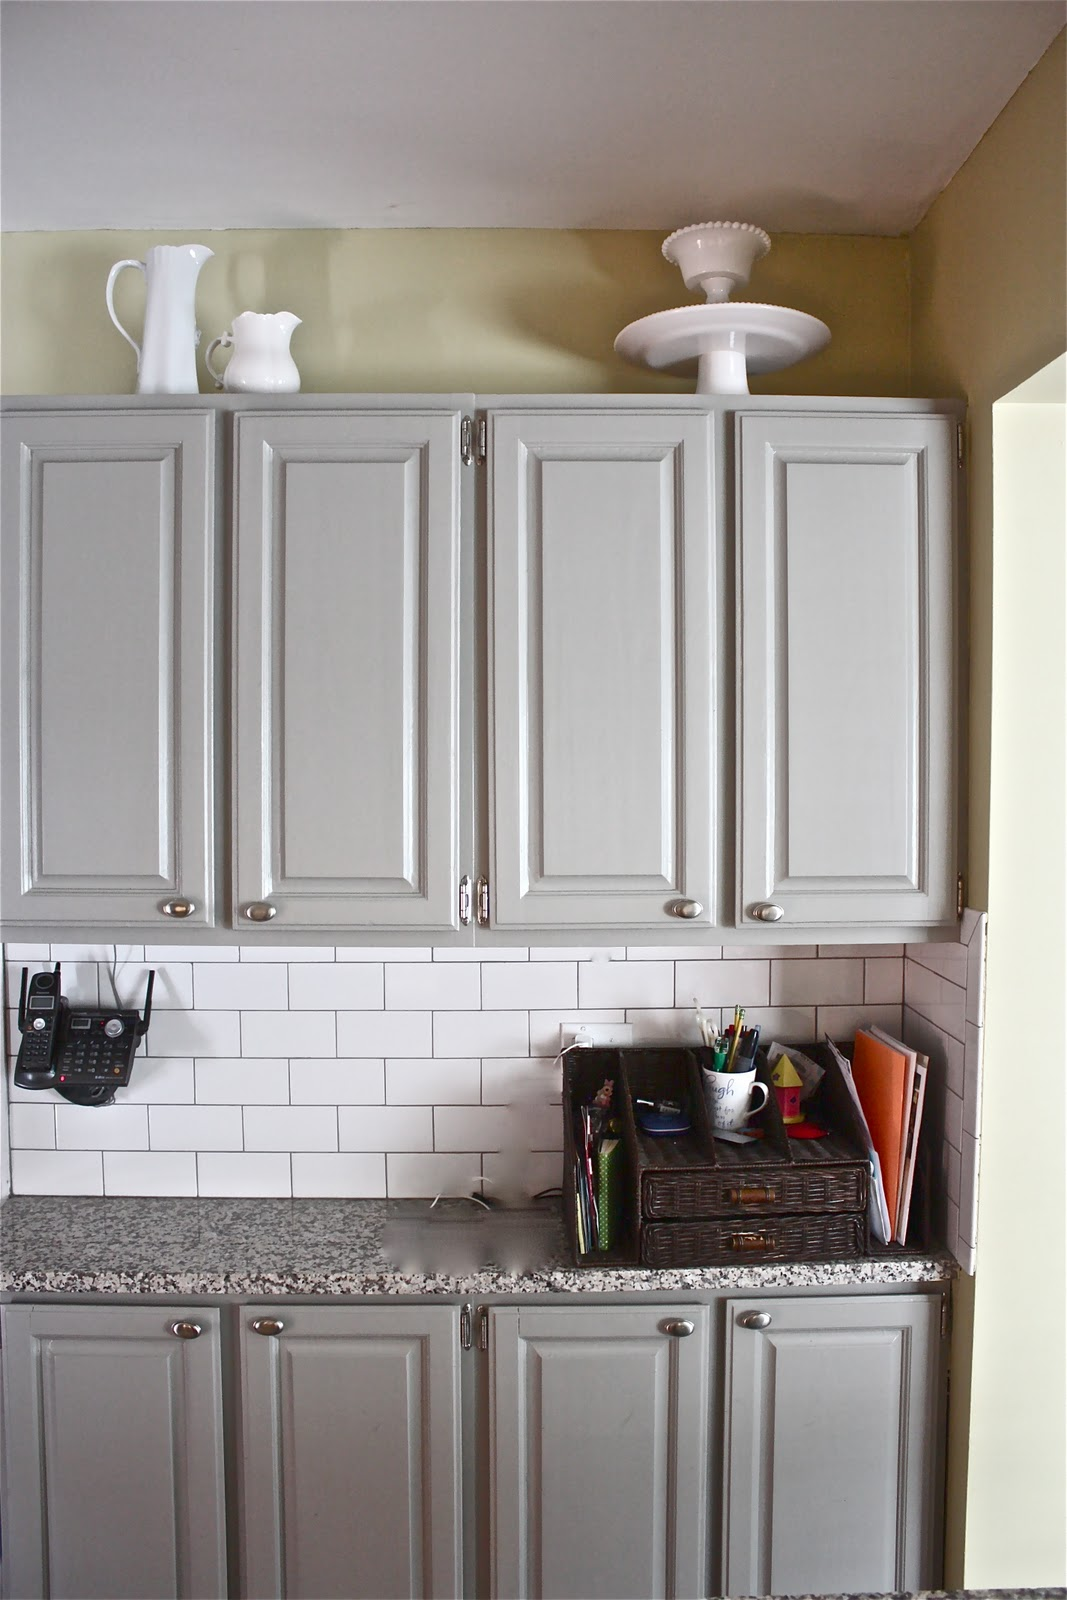 Stewart would be so proud of her Bedford Gray color on these cabinets